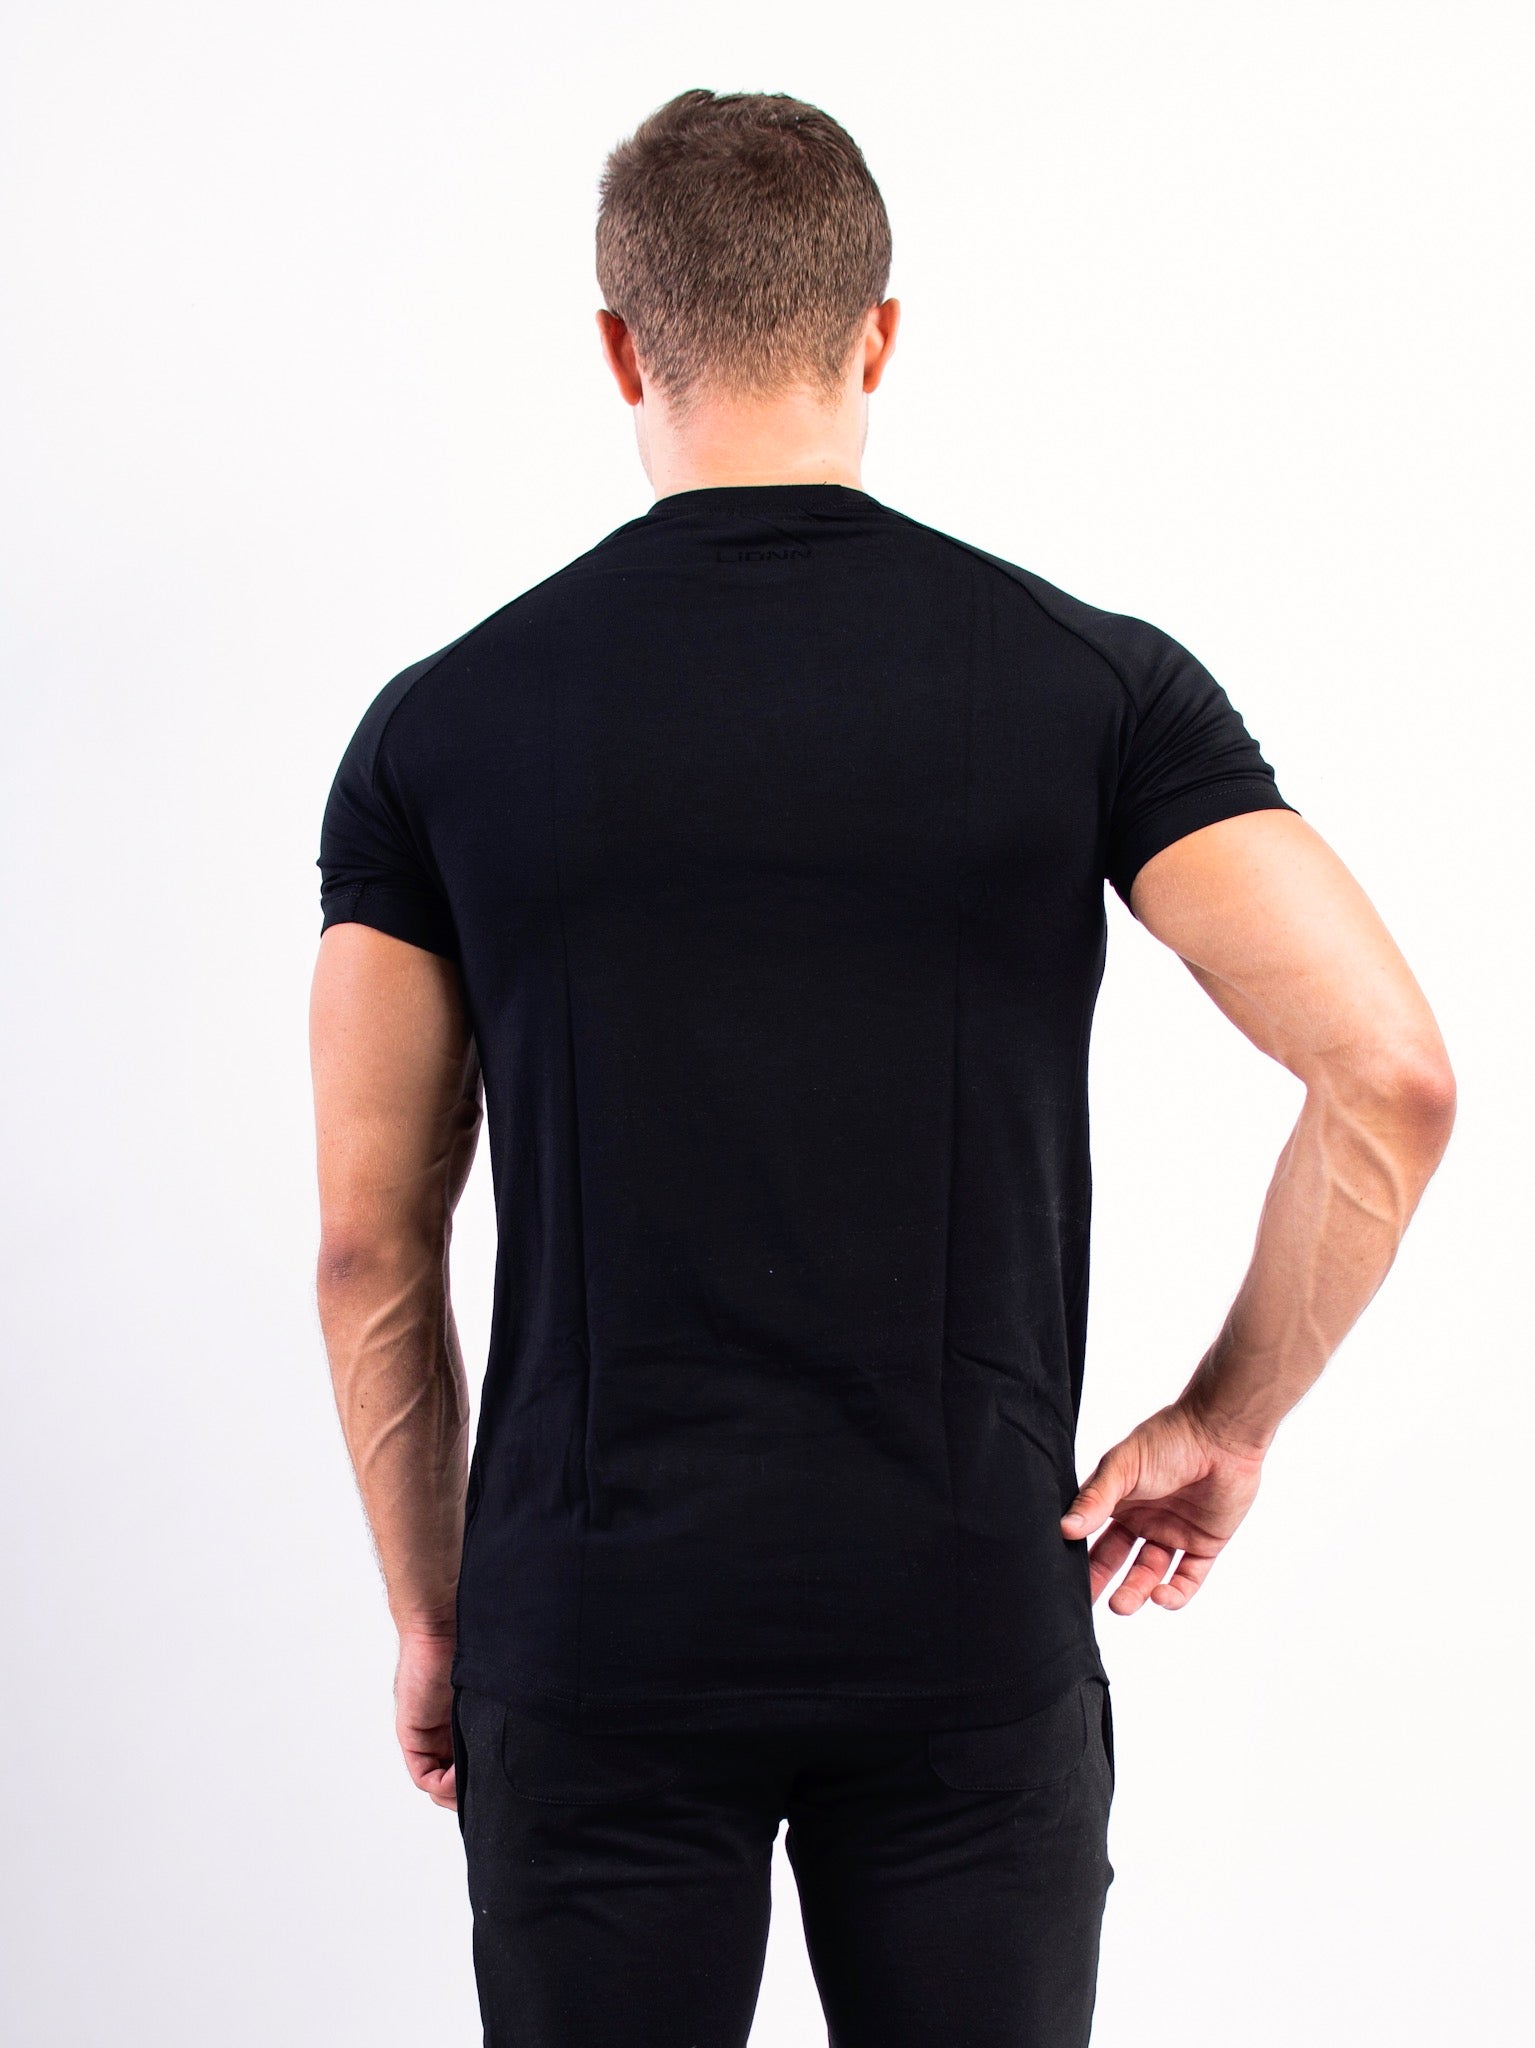 Fitness n' chill T-shirt Black